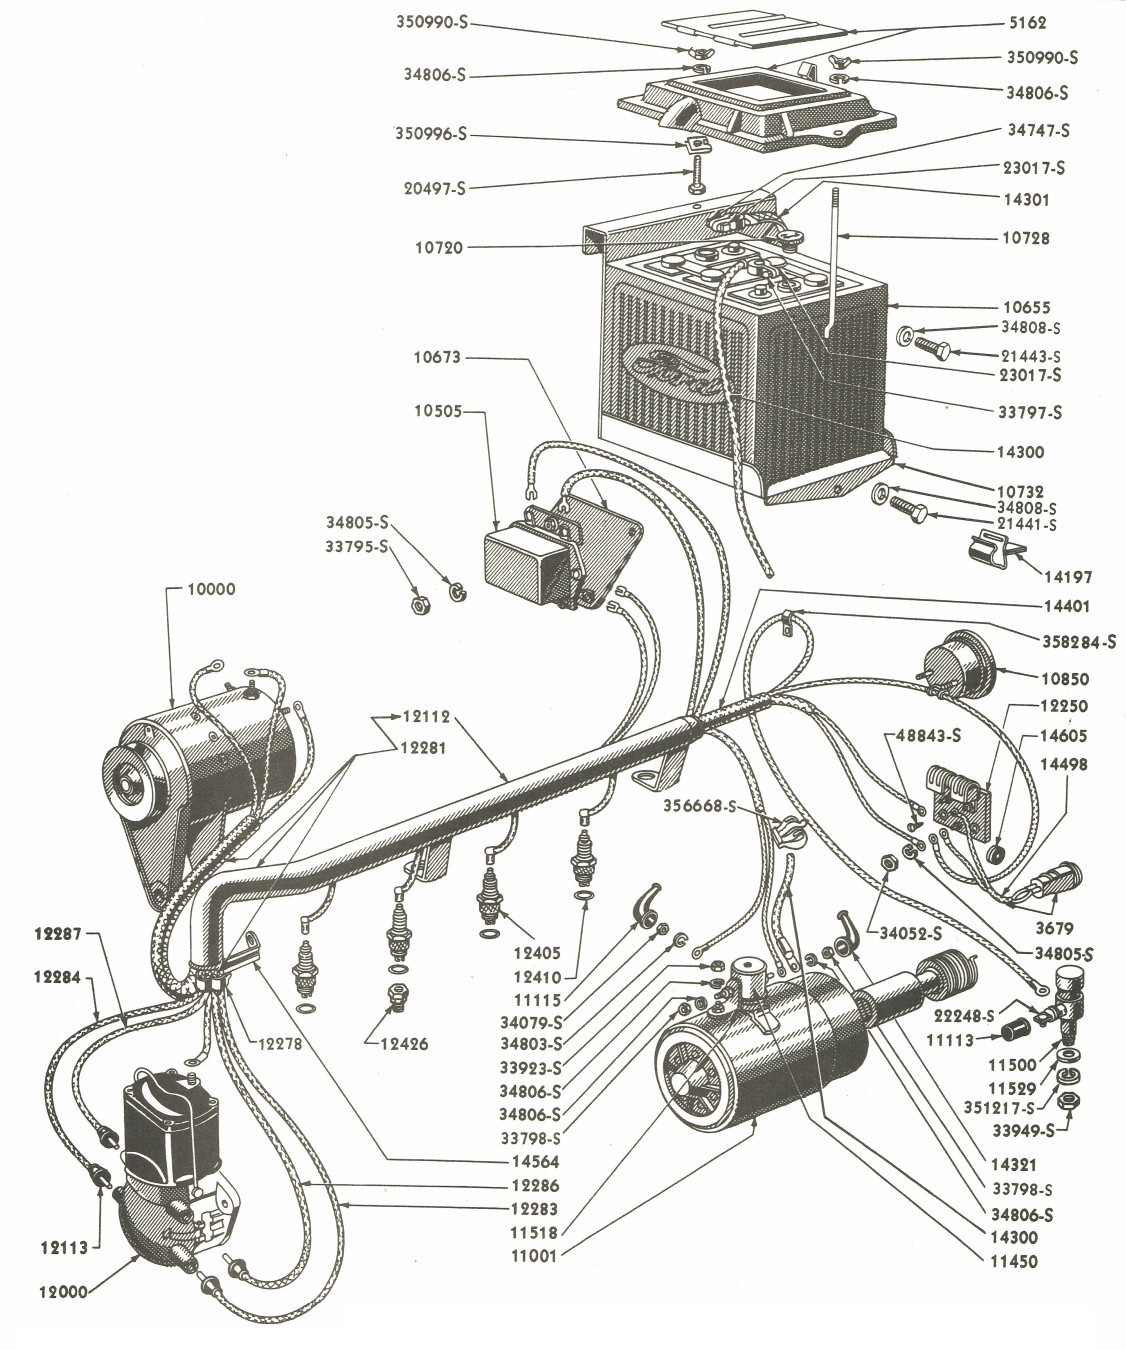 8N 12 Volt Wiring Diagram from i0.wp.com